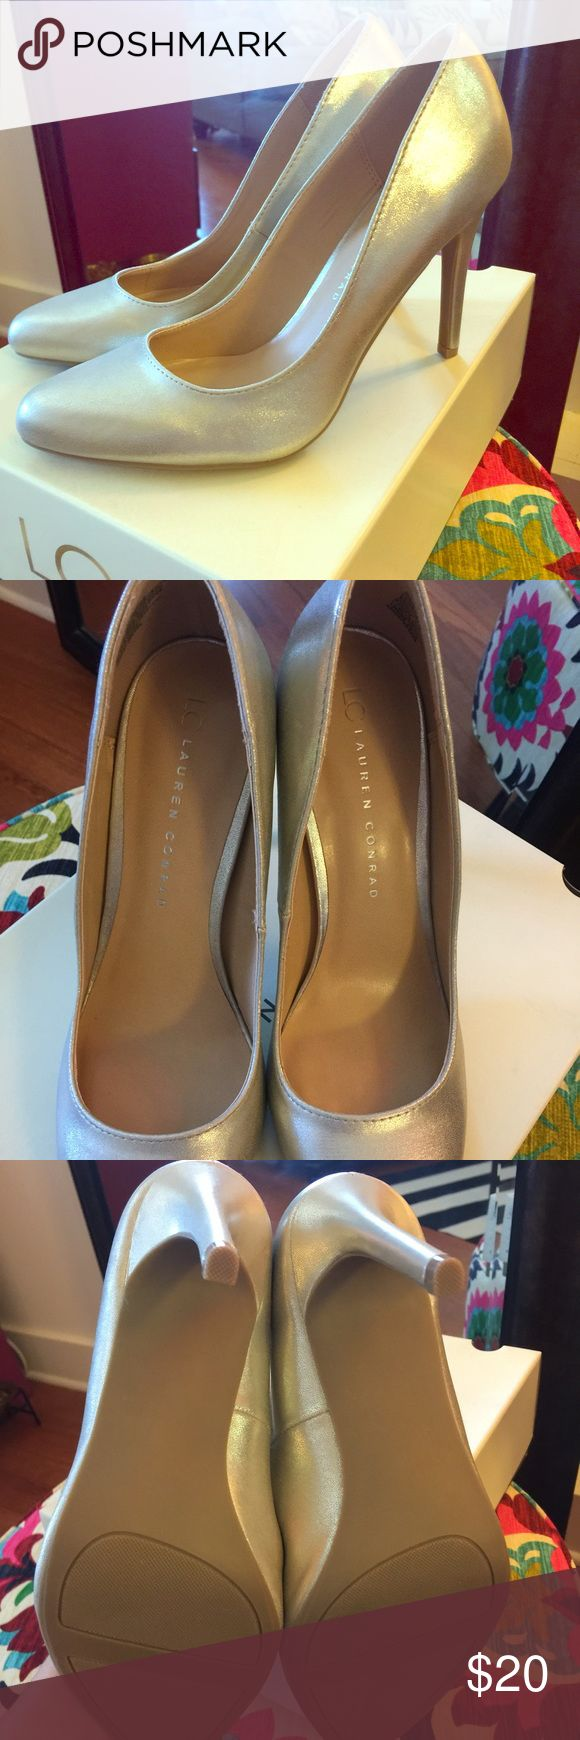 Lauren Conrad Gold Pumps NWT LC gold pumps- 4 inch heels, never worn- still in box. I bought from another posher but they are too big for me. LC Lauren Conrad Shoes Heels